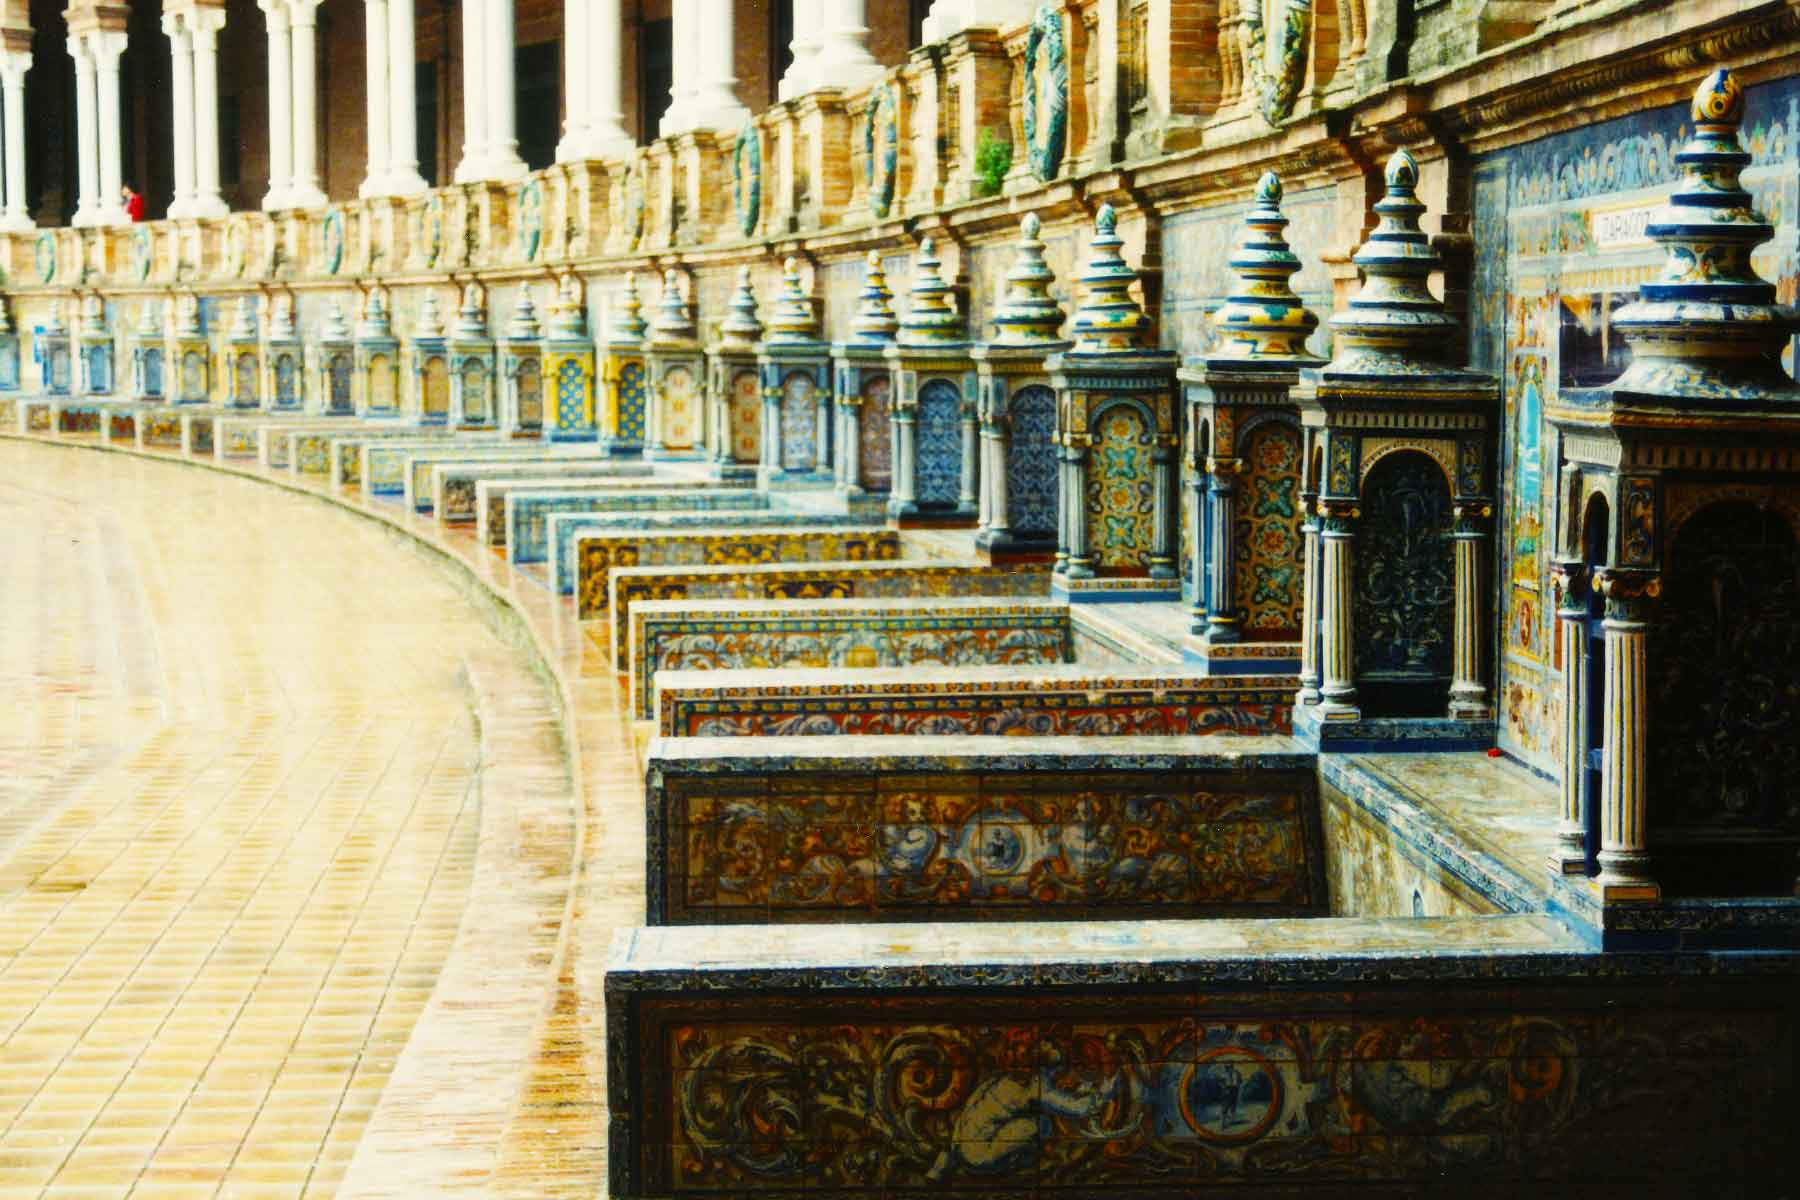 Ceramic tiled alcoves | Plaza de Espana | Seville Spain - Steven Andrew Martin - Study Abroad Photo Journal